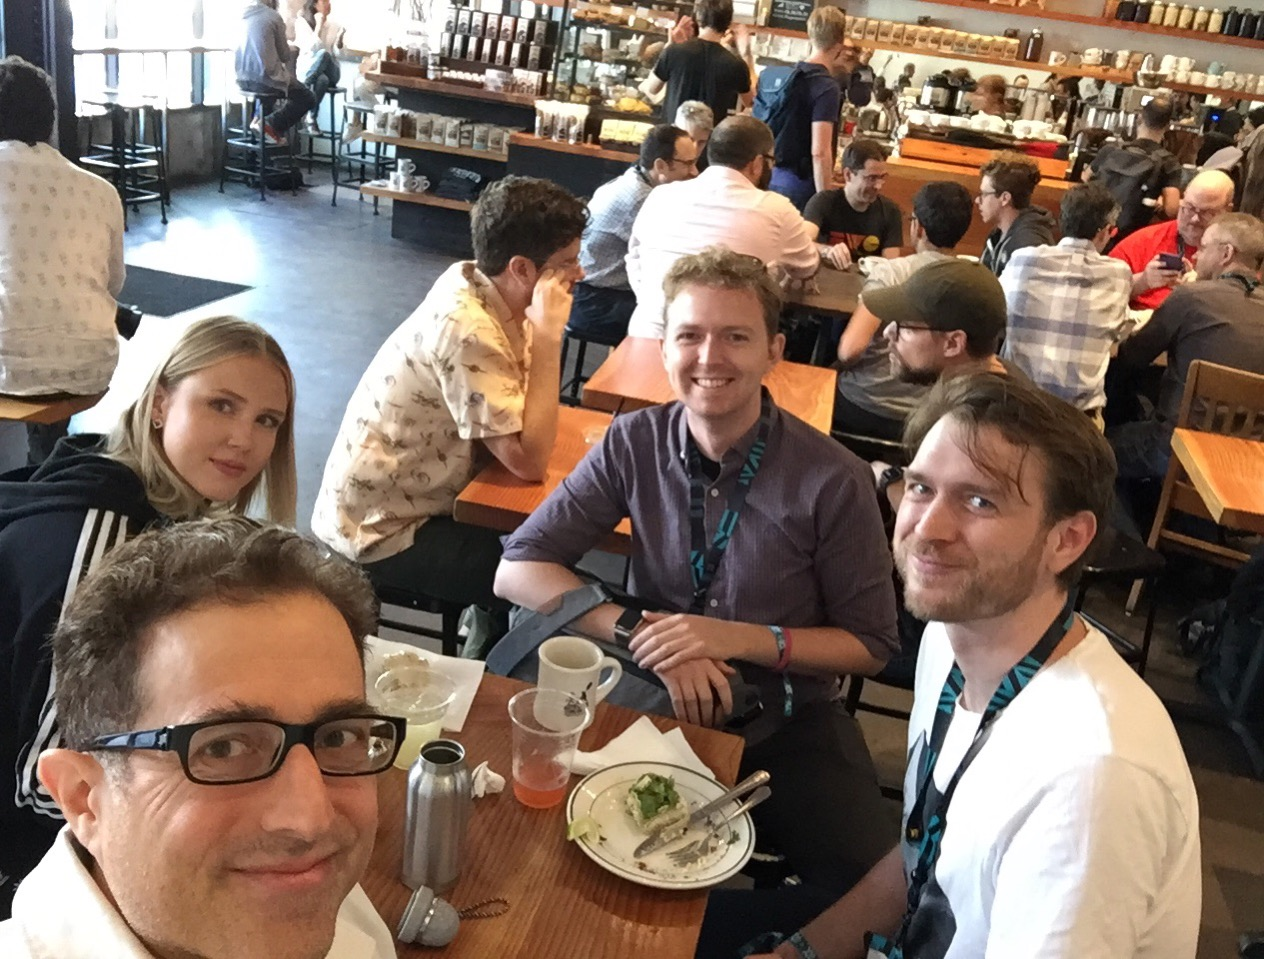 XOXO IndieWeb meetup participants, selfie by Tantek with two folks from Oslo, and Alan